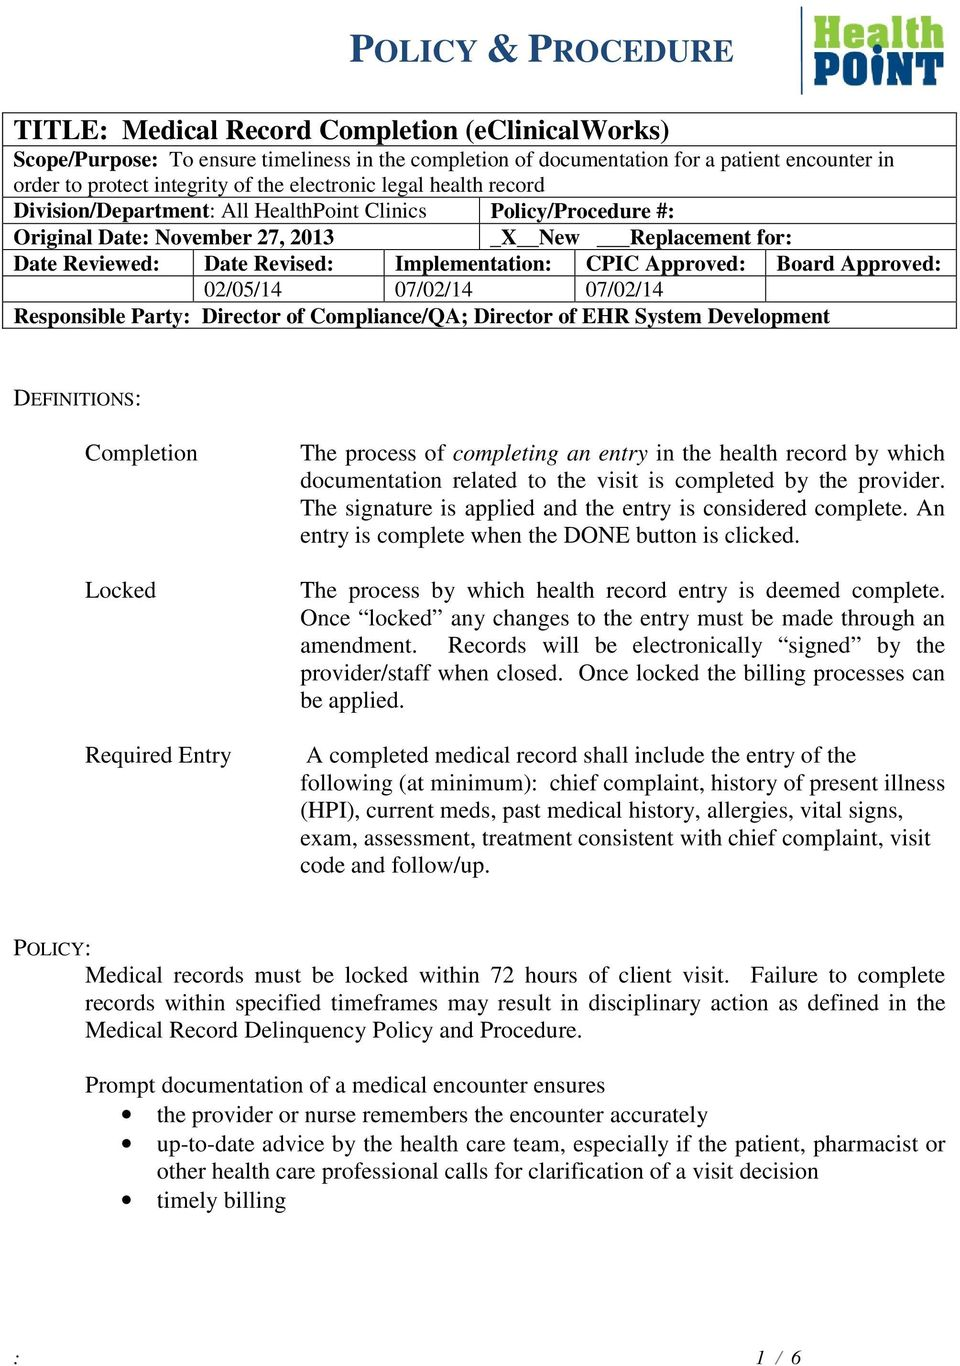 POLICY & PROCEDURE DEFINITIONS: - PDF